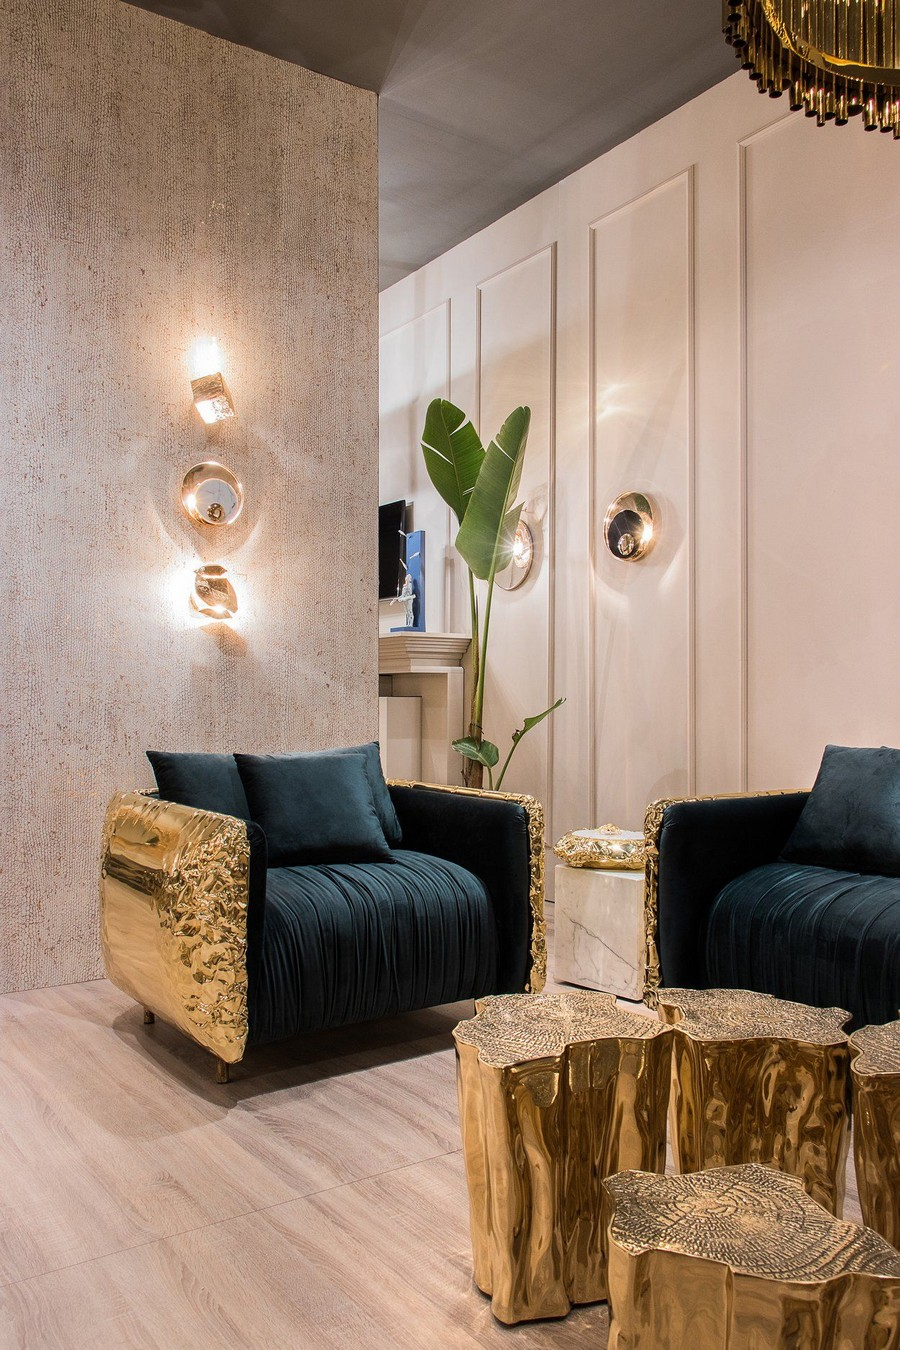 7 Luxury Design Brands That You Can Find At Élan Collections Store luxury design brands 7 Luxury Design Brands That You Can Find At Élan Collections Store 7 Luxury Design Brands That You Can Find At   lan Collections Store